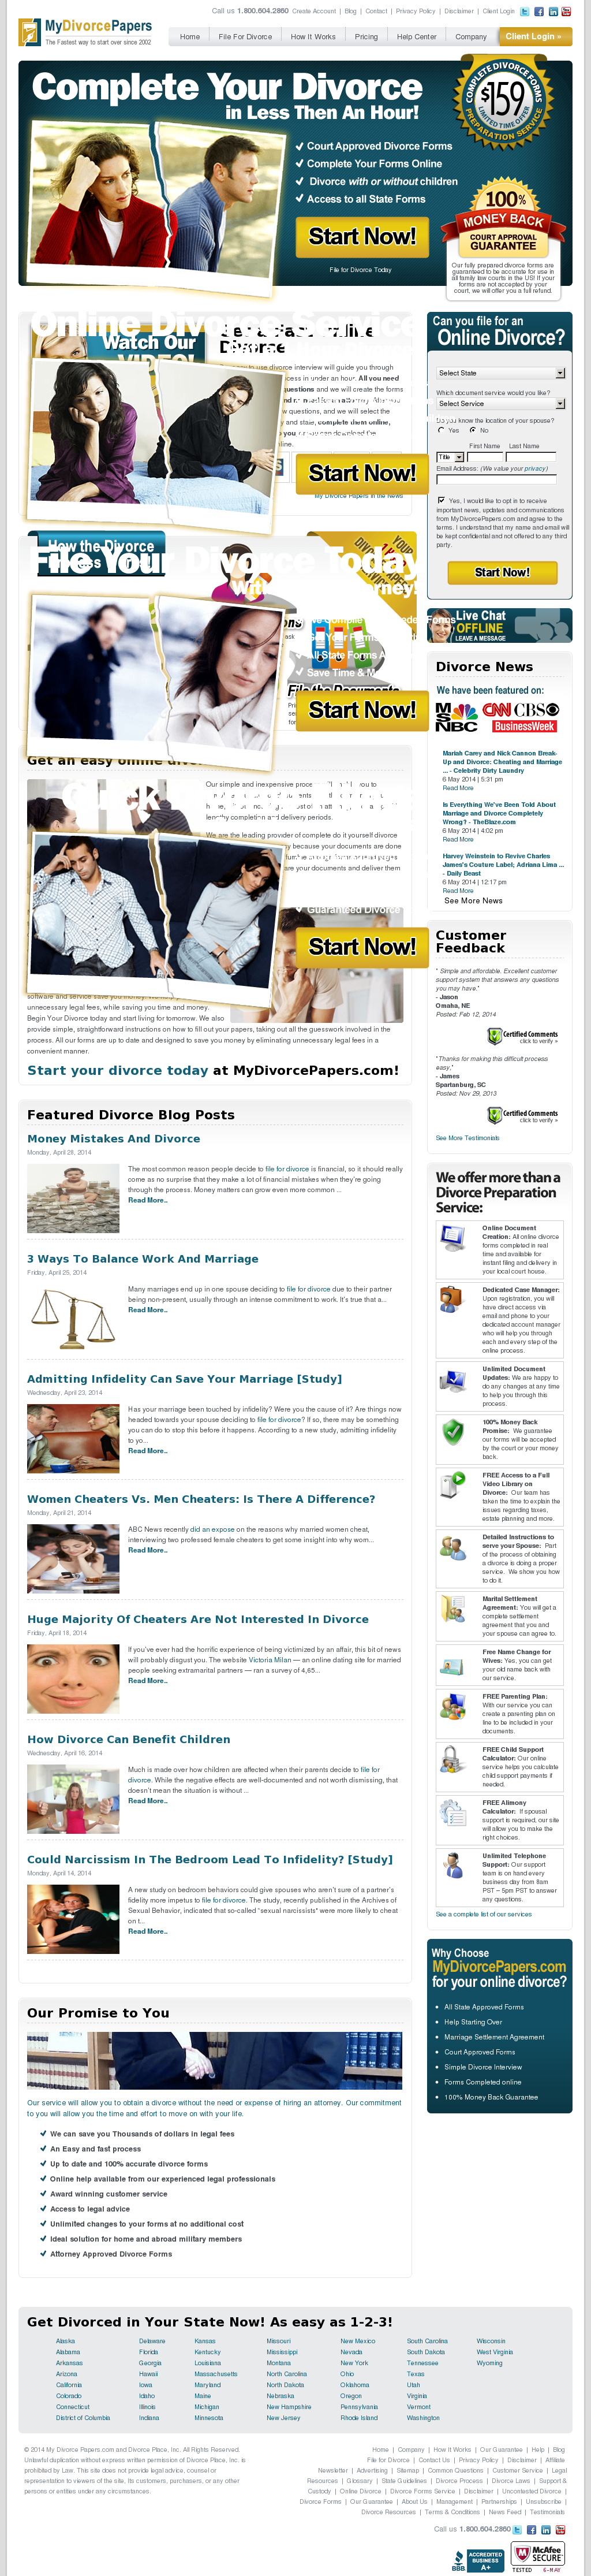 MyDivorcePapers Competitors, Revenue and Employees - Owler